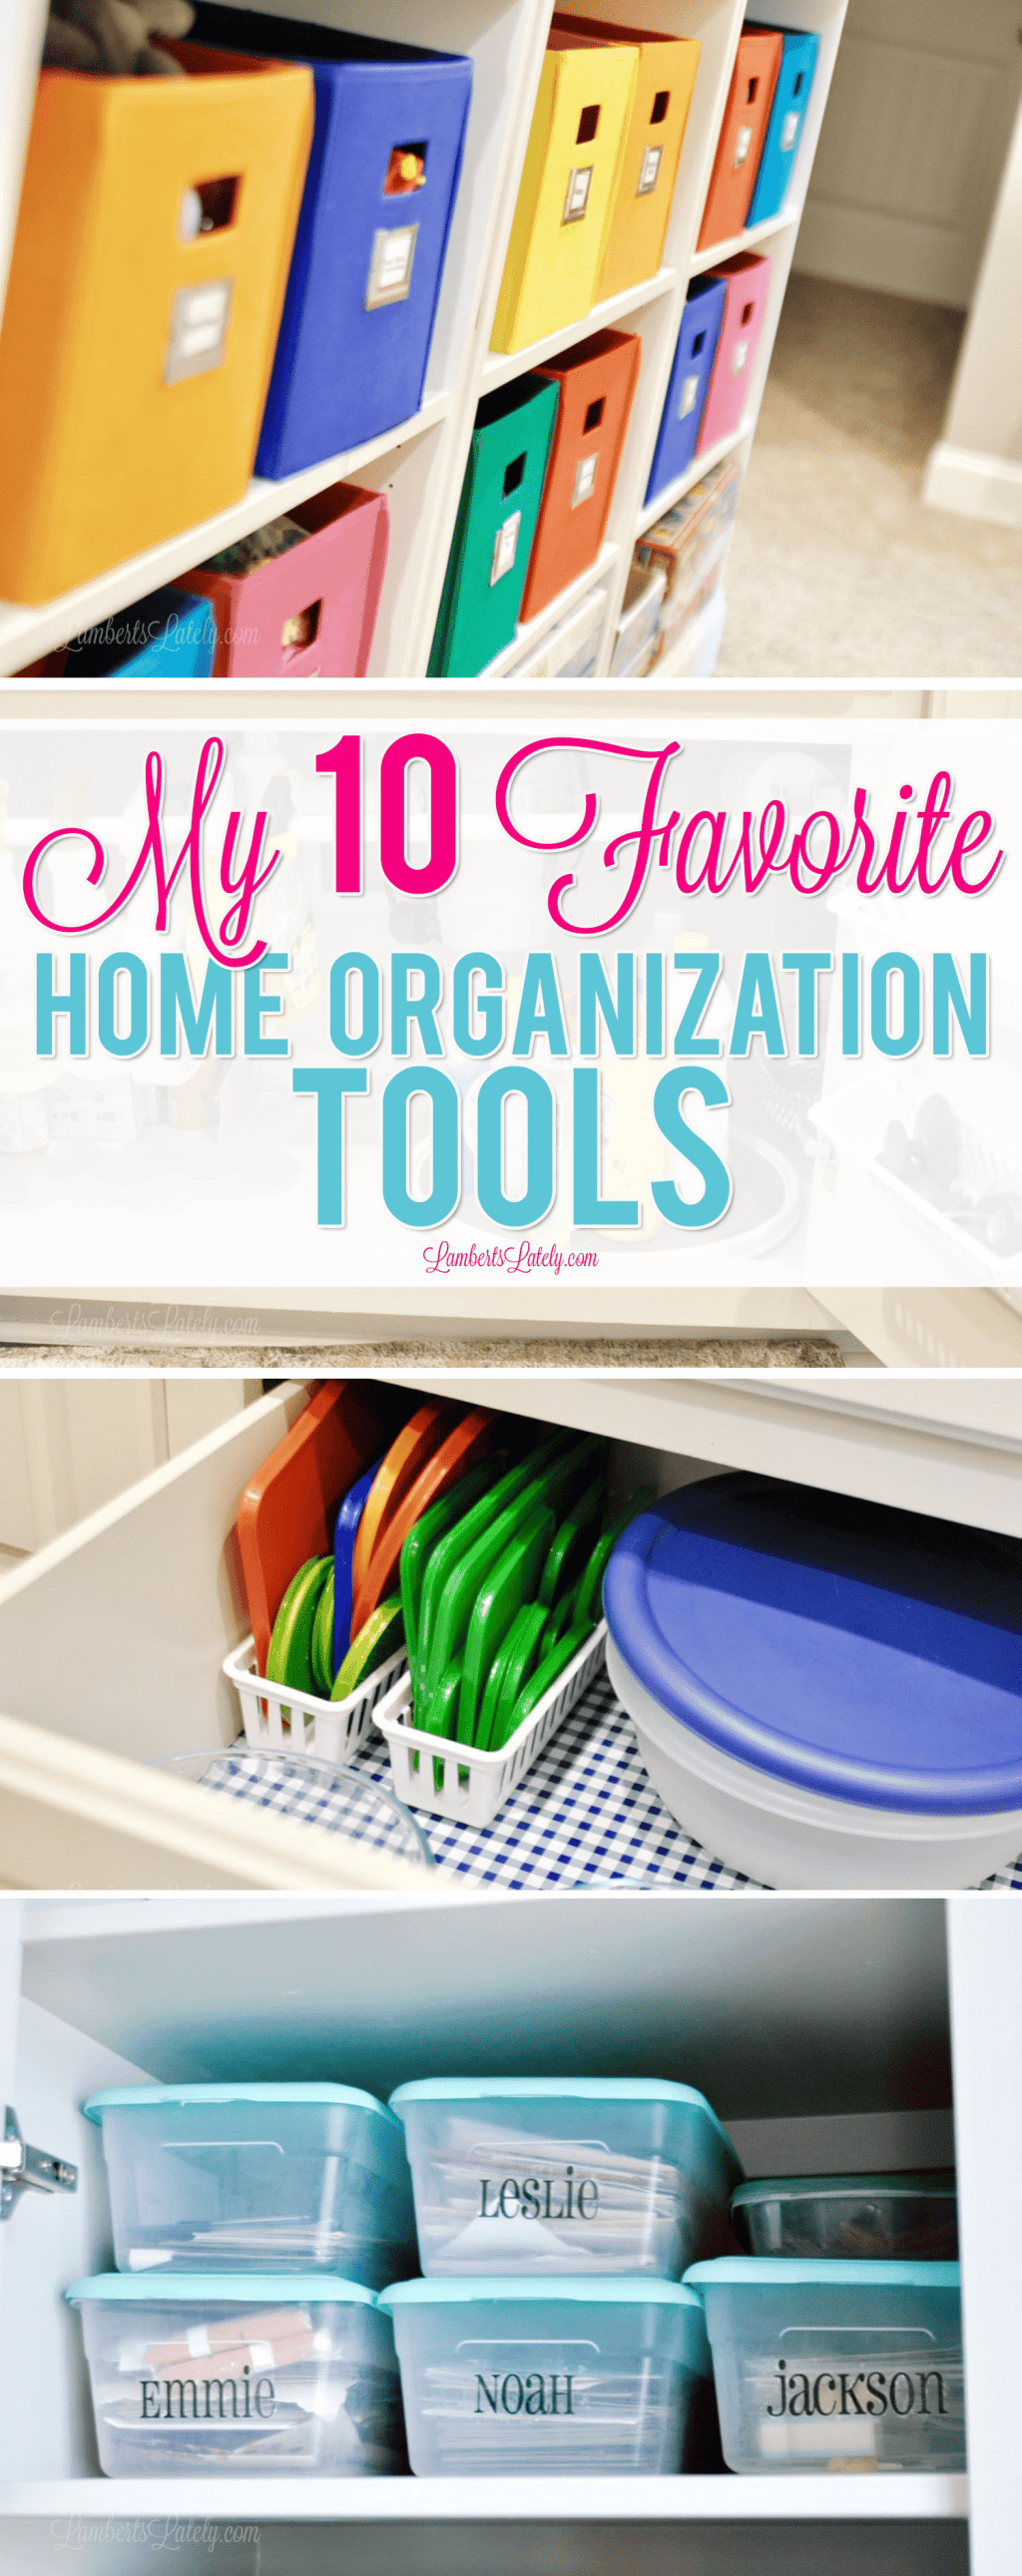 Find great storage solutions for any size home in this round-up of organization products - find inspiration for how to organize small spaces with inexpensive products!